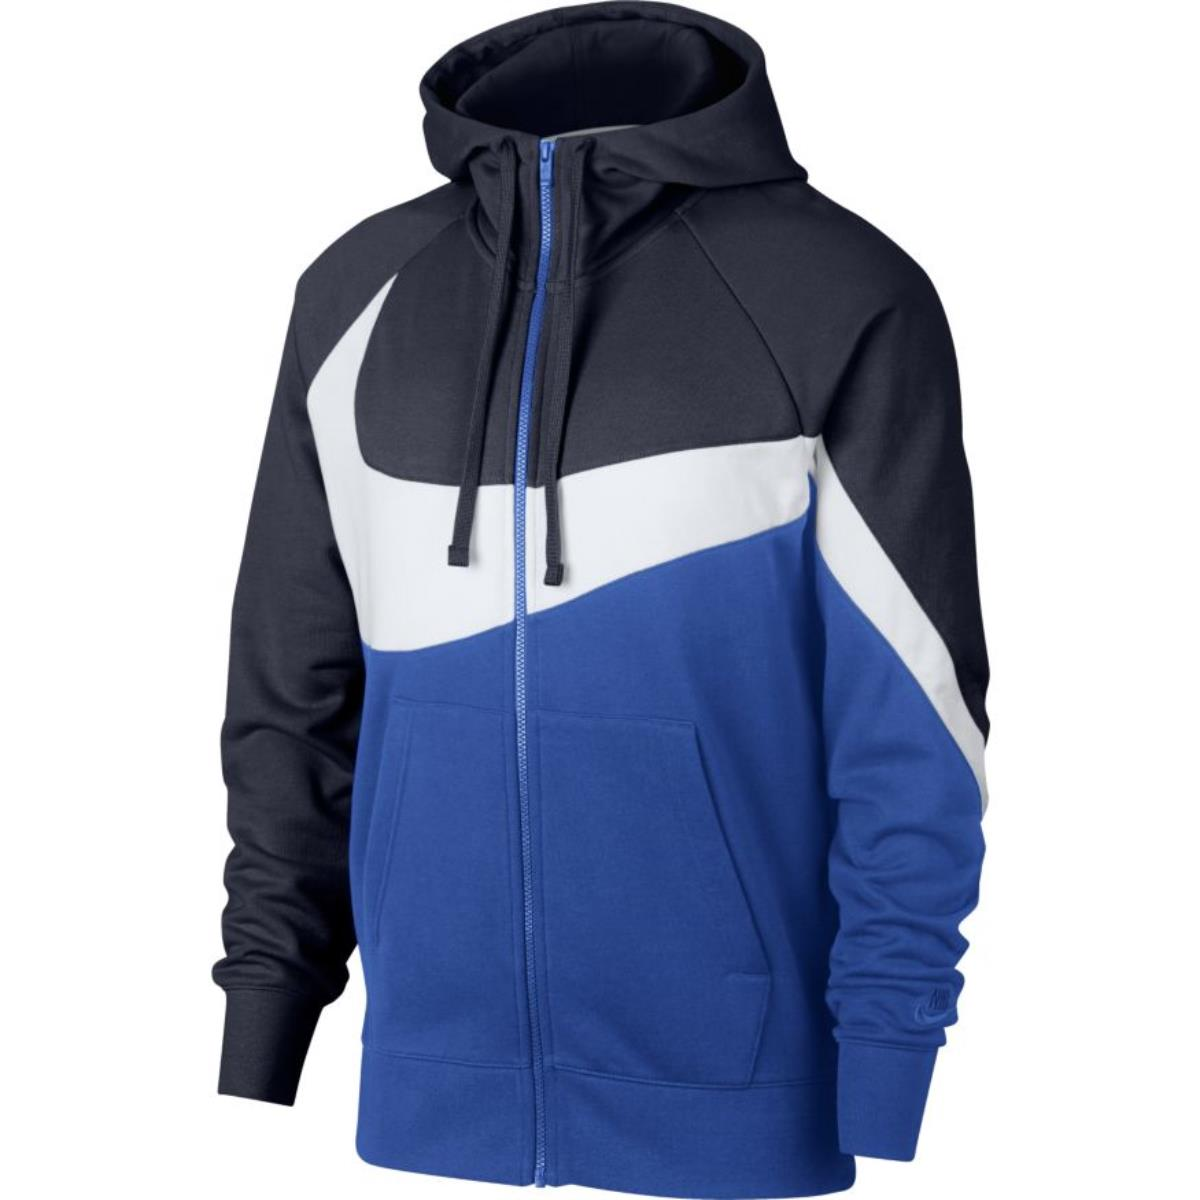 NIKE M NSW HBR HOODIE FULL ZIP FRENCH TERRY STMT FELPA